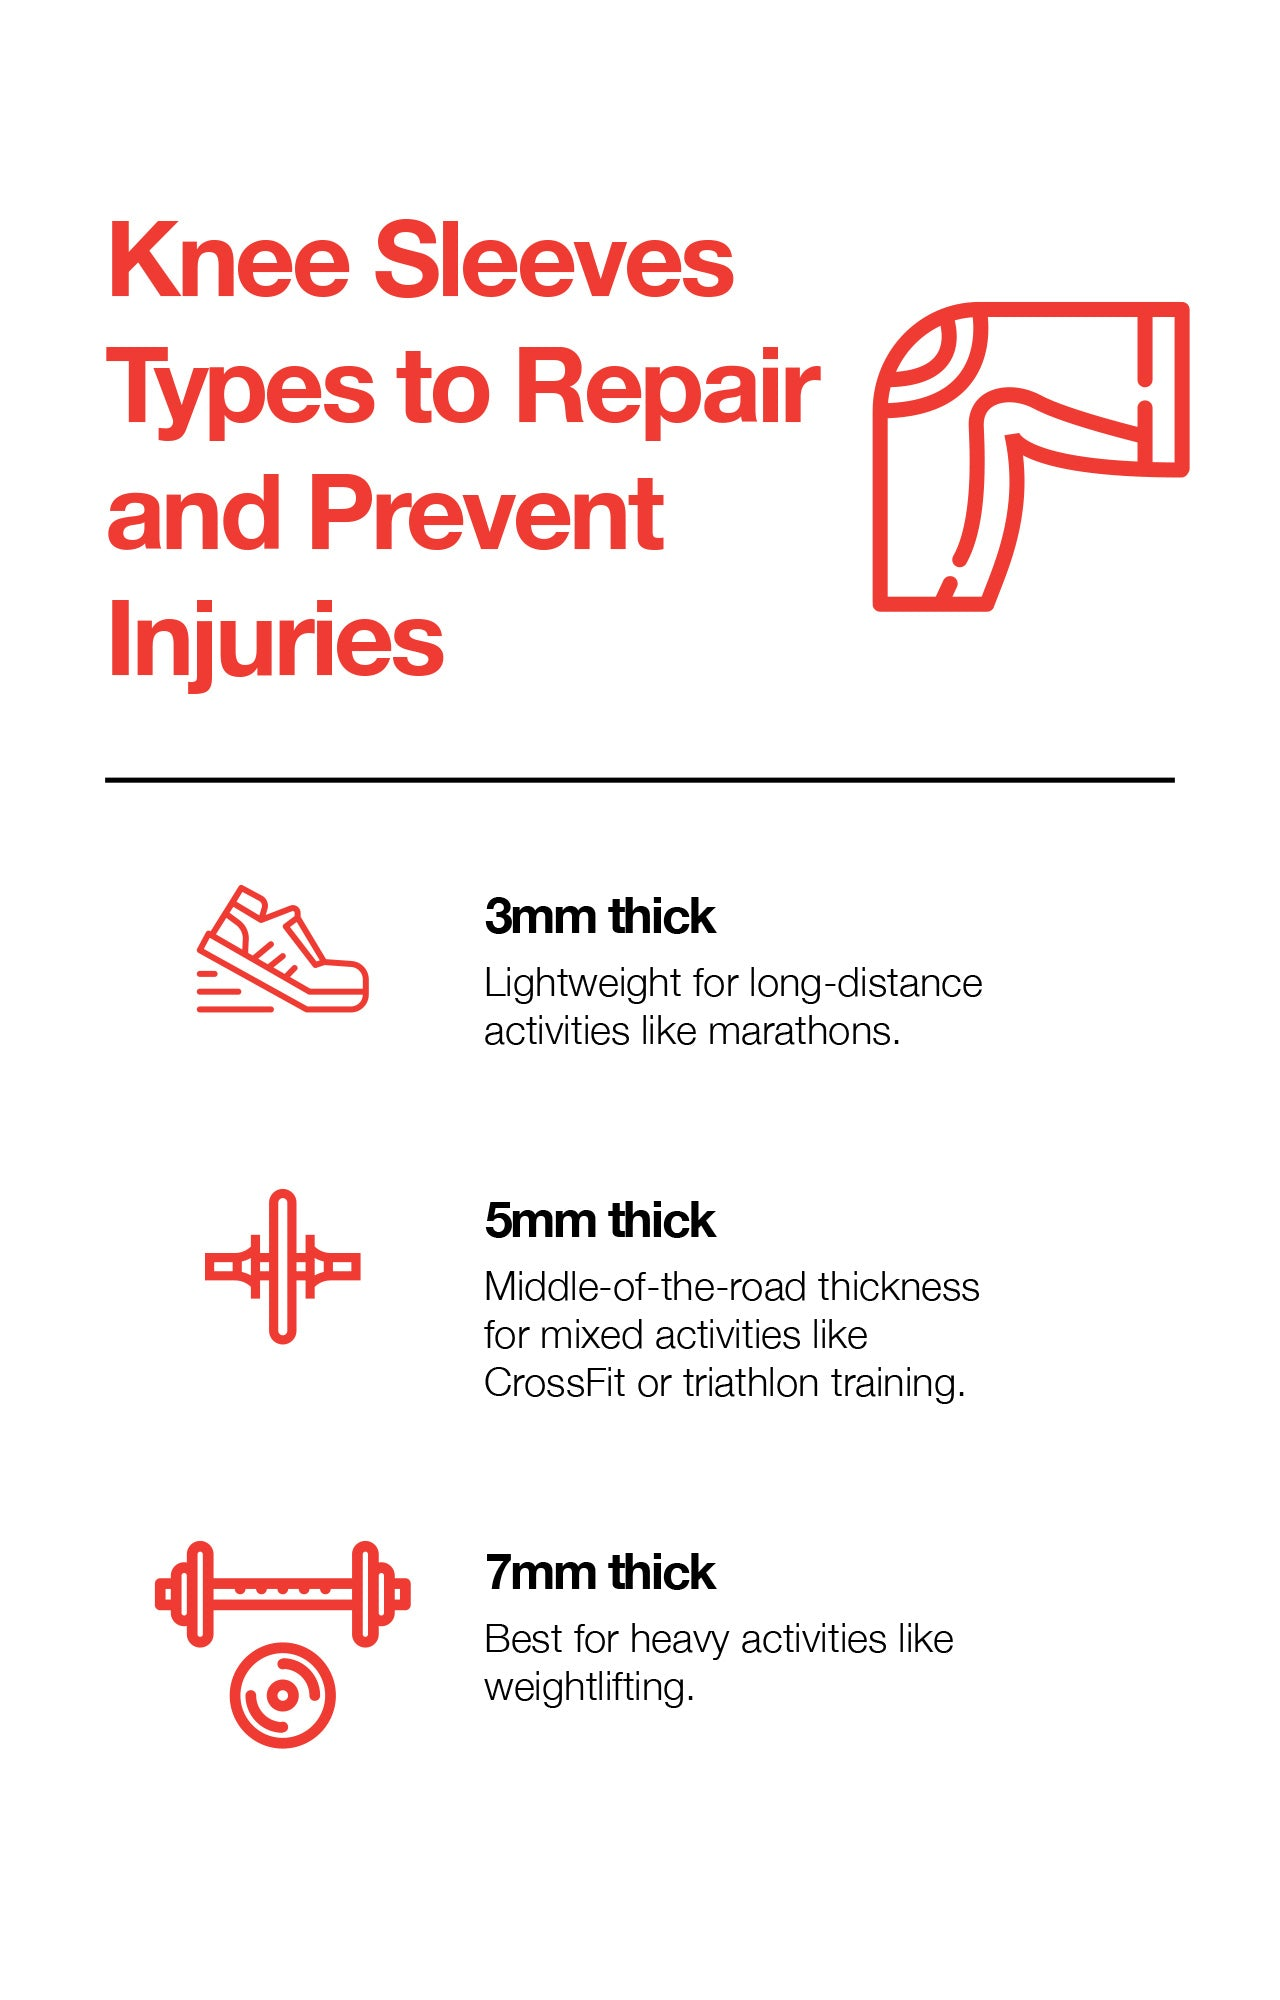 Knee Sleeves Types to Repair and Prevent Injuries